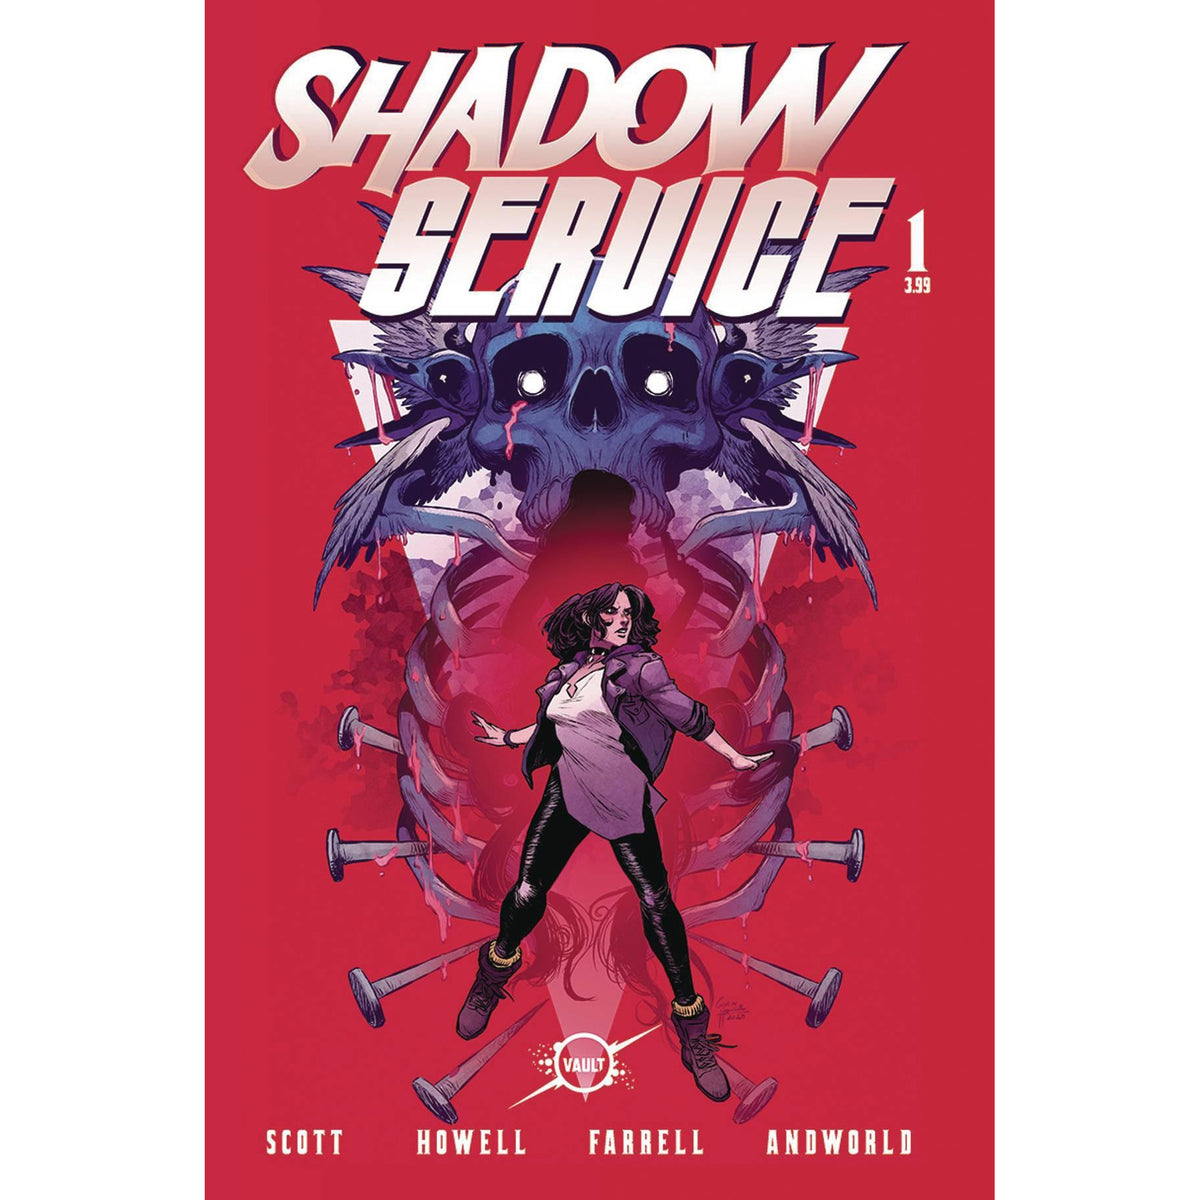 SHADOW SERVICE #1 COVER A HOWELL & FARRELL